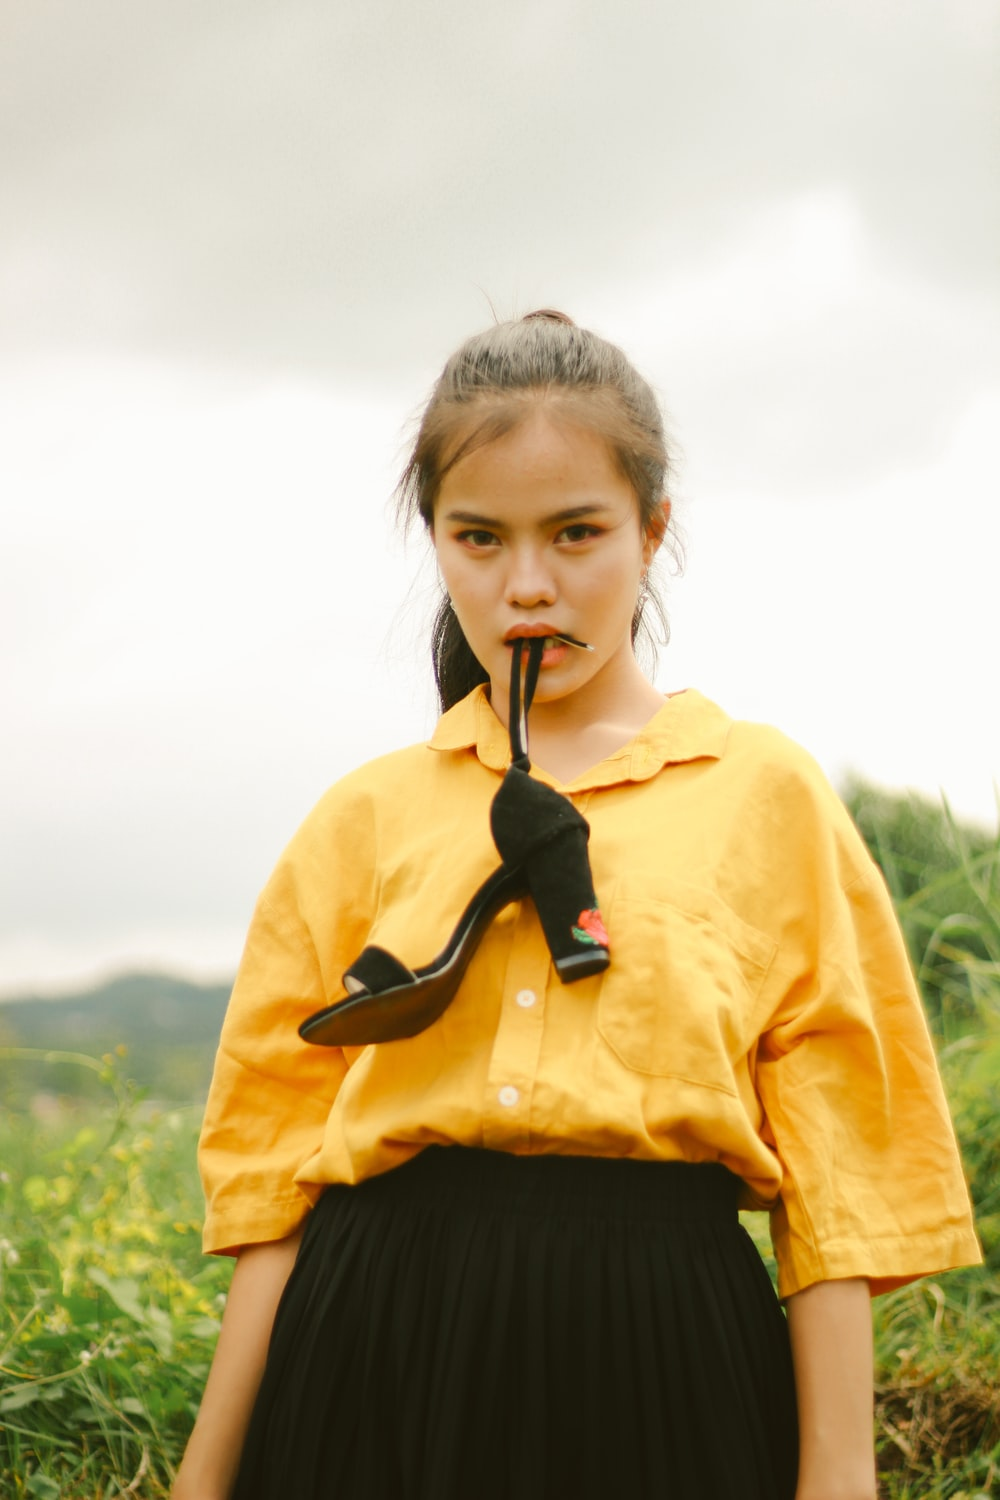 girl in yellow and black jacket